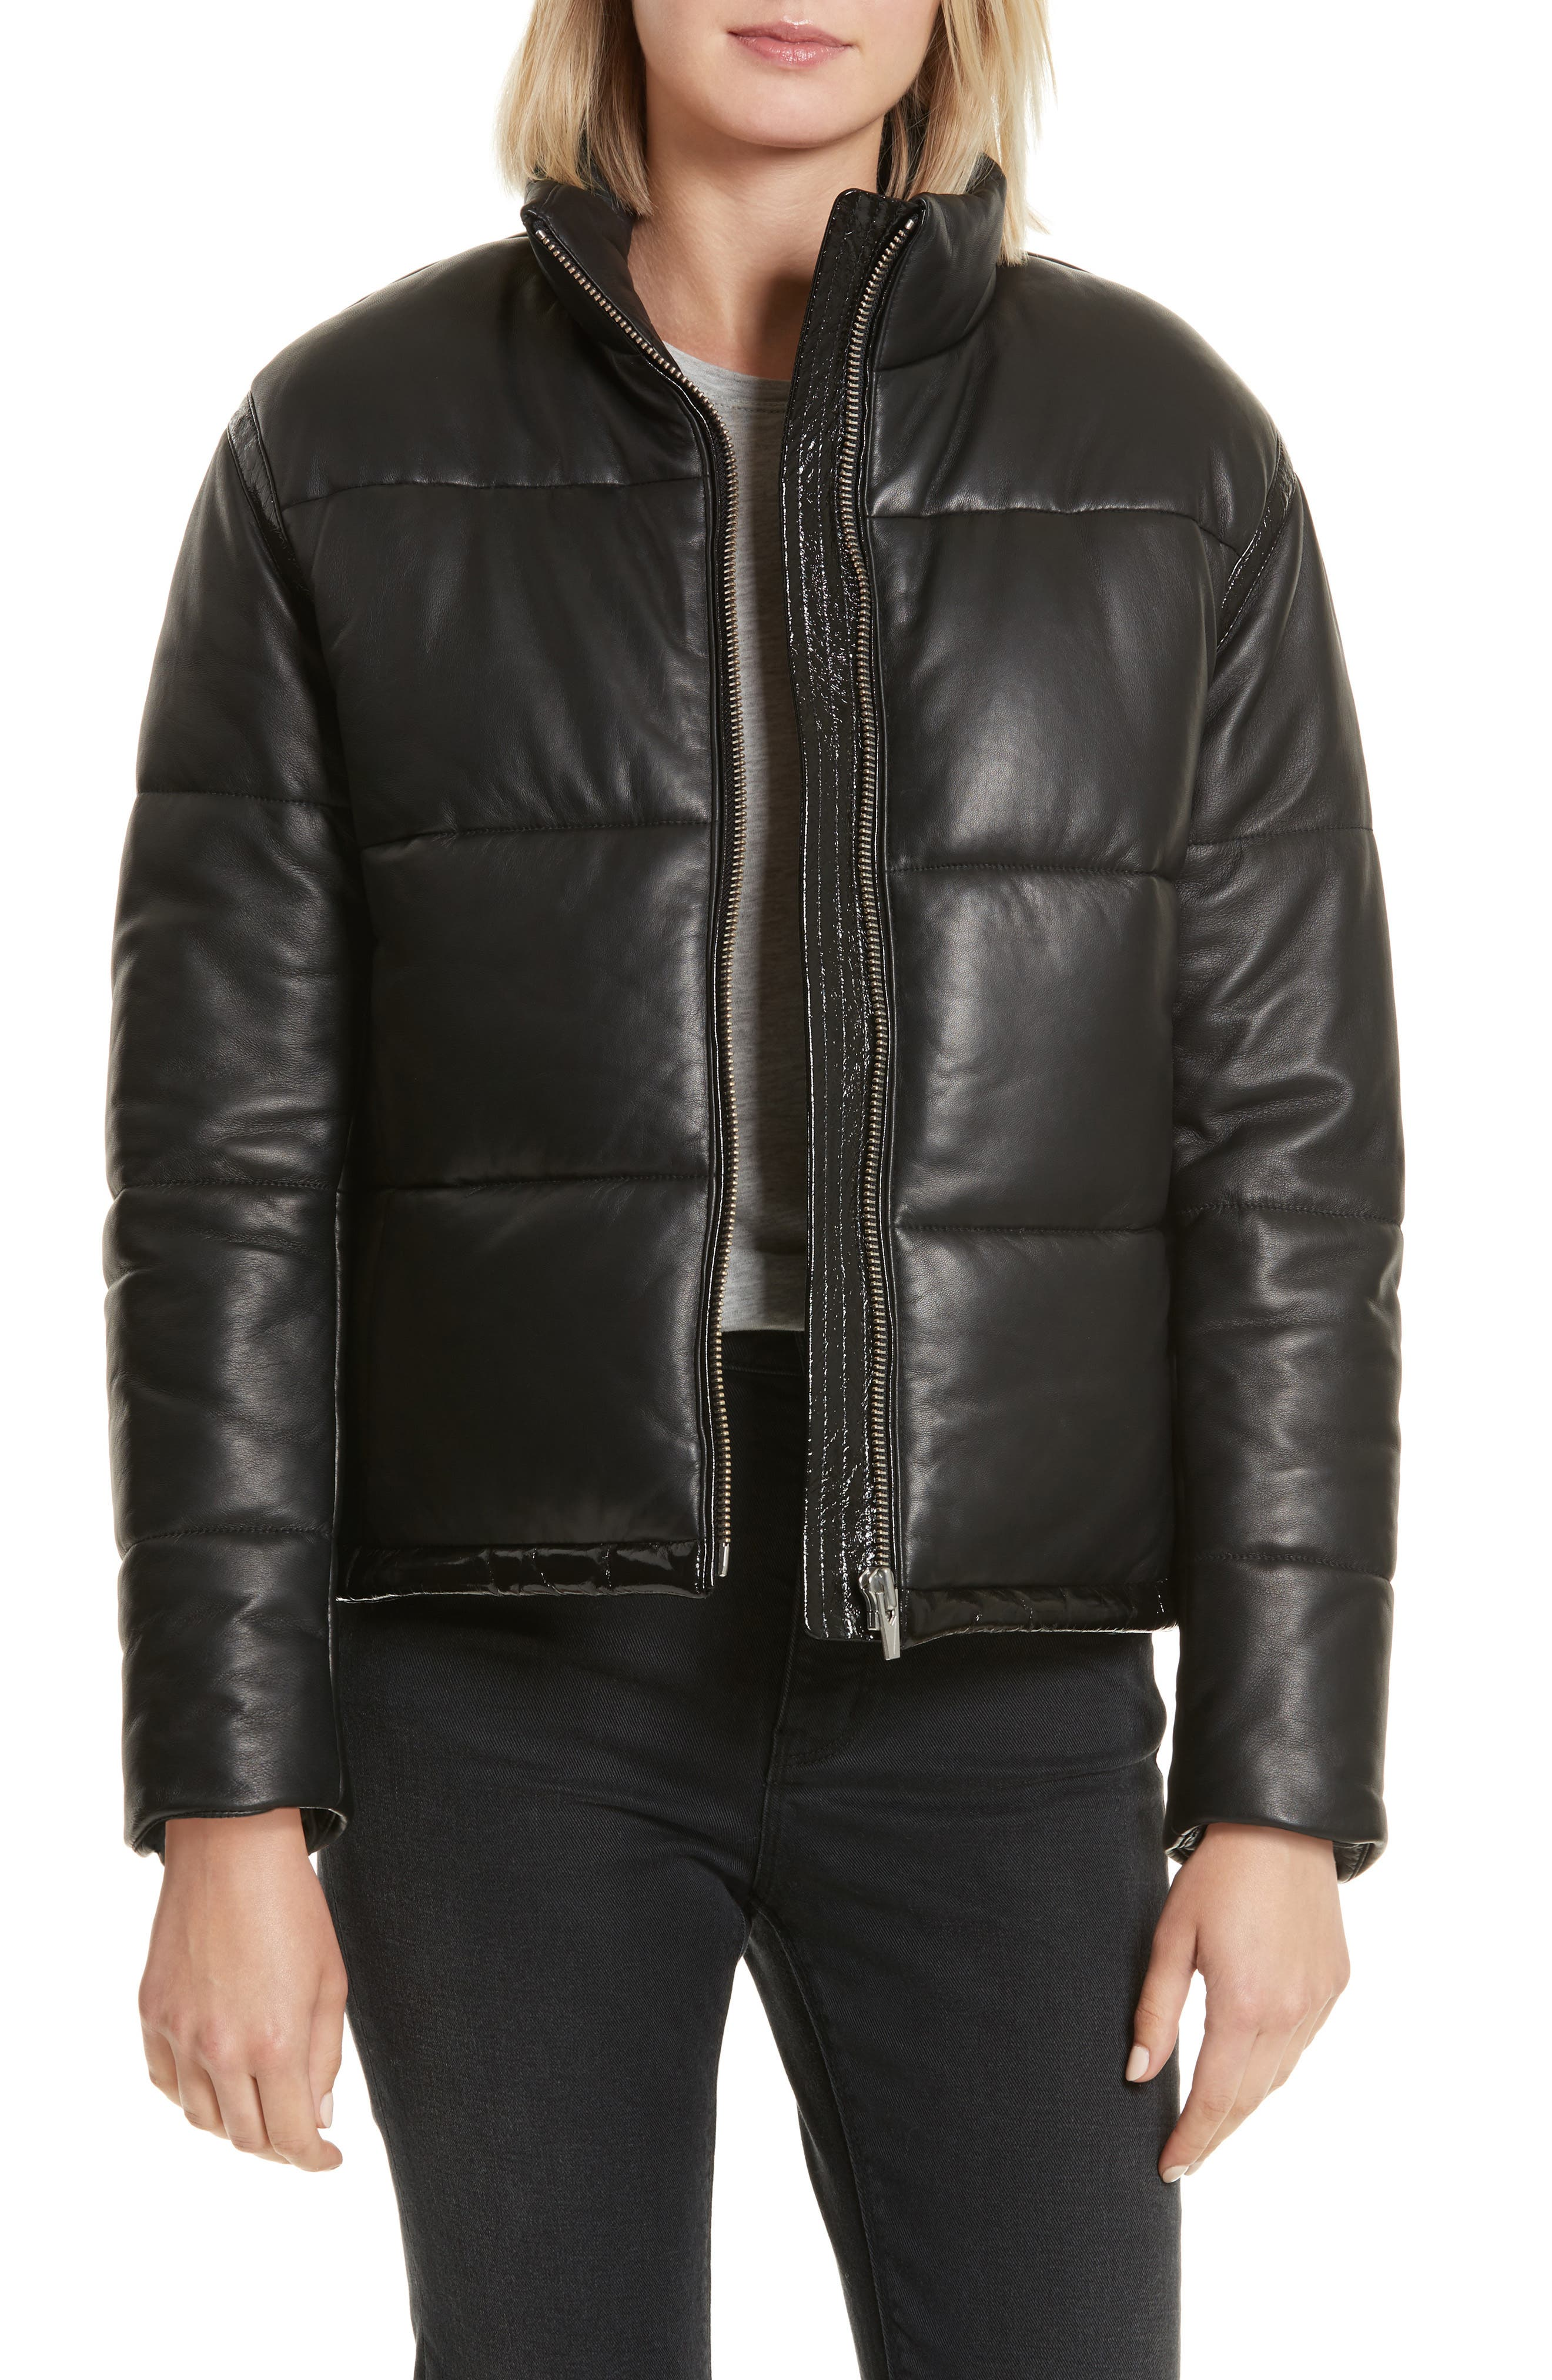 Power Puff Leather Jacket,                         Main,                         color, Black